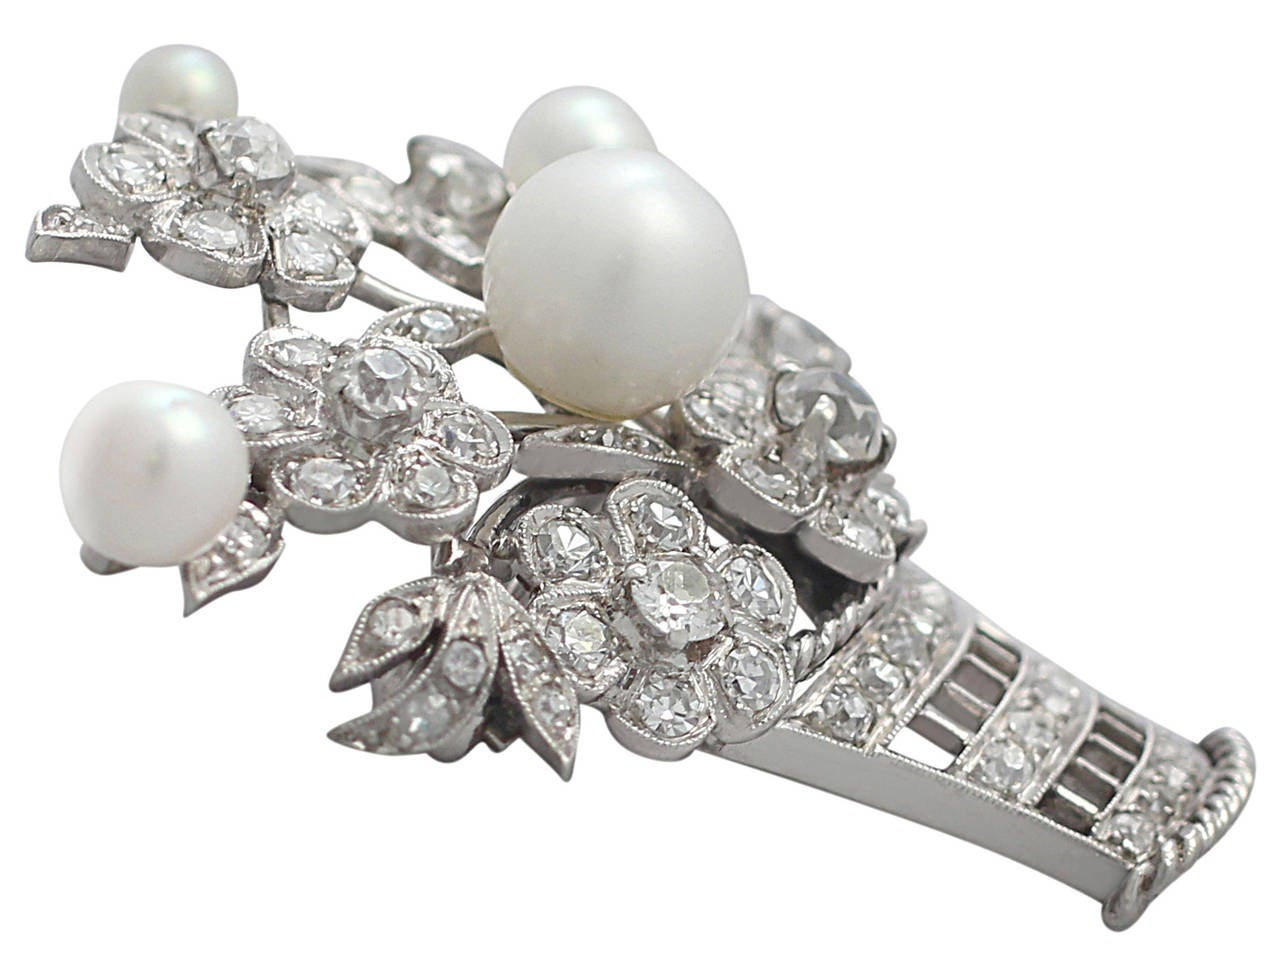 2.81Ct Diamond and Pearl, 14k White Gold Brooch - Antique Circa 1900 2